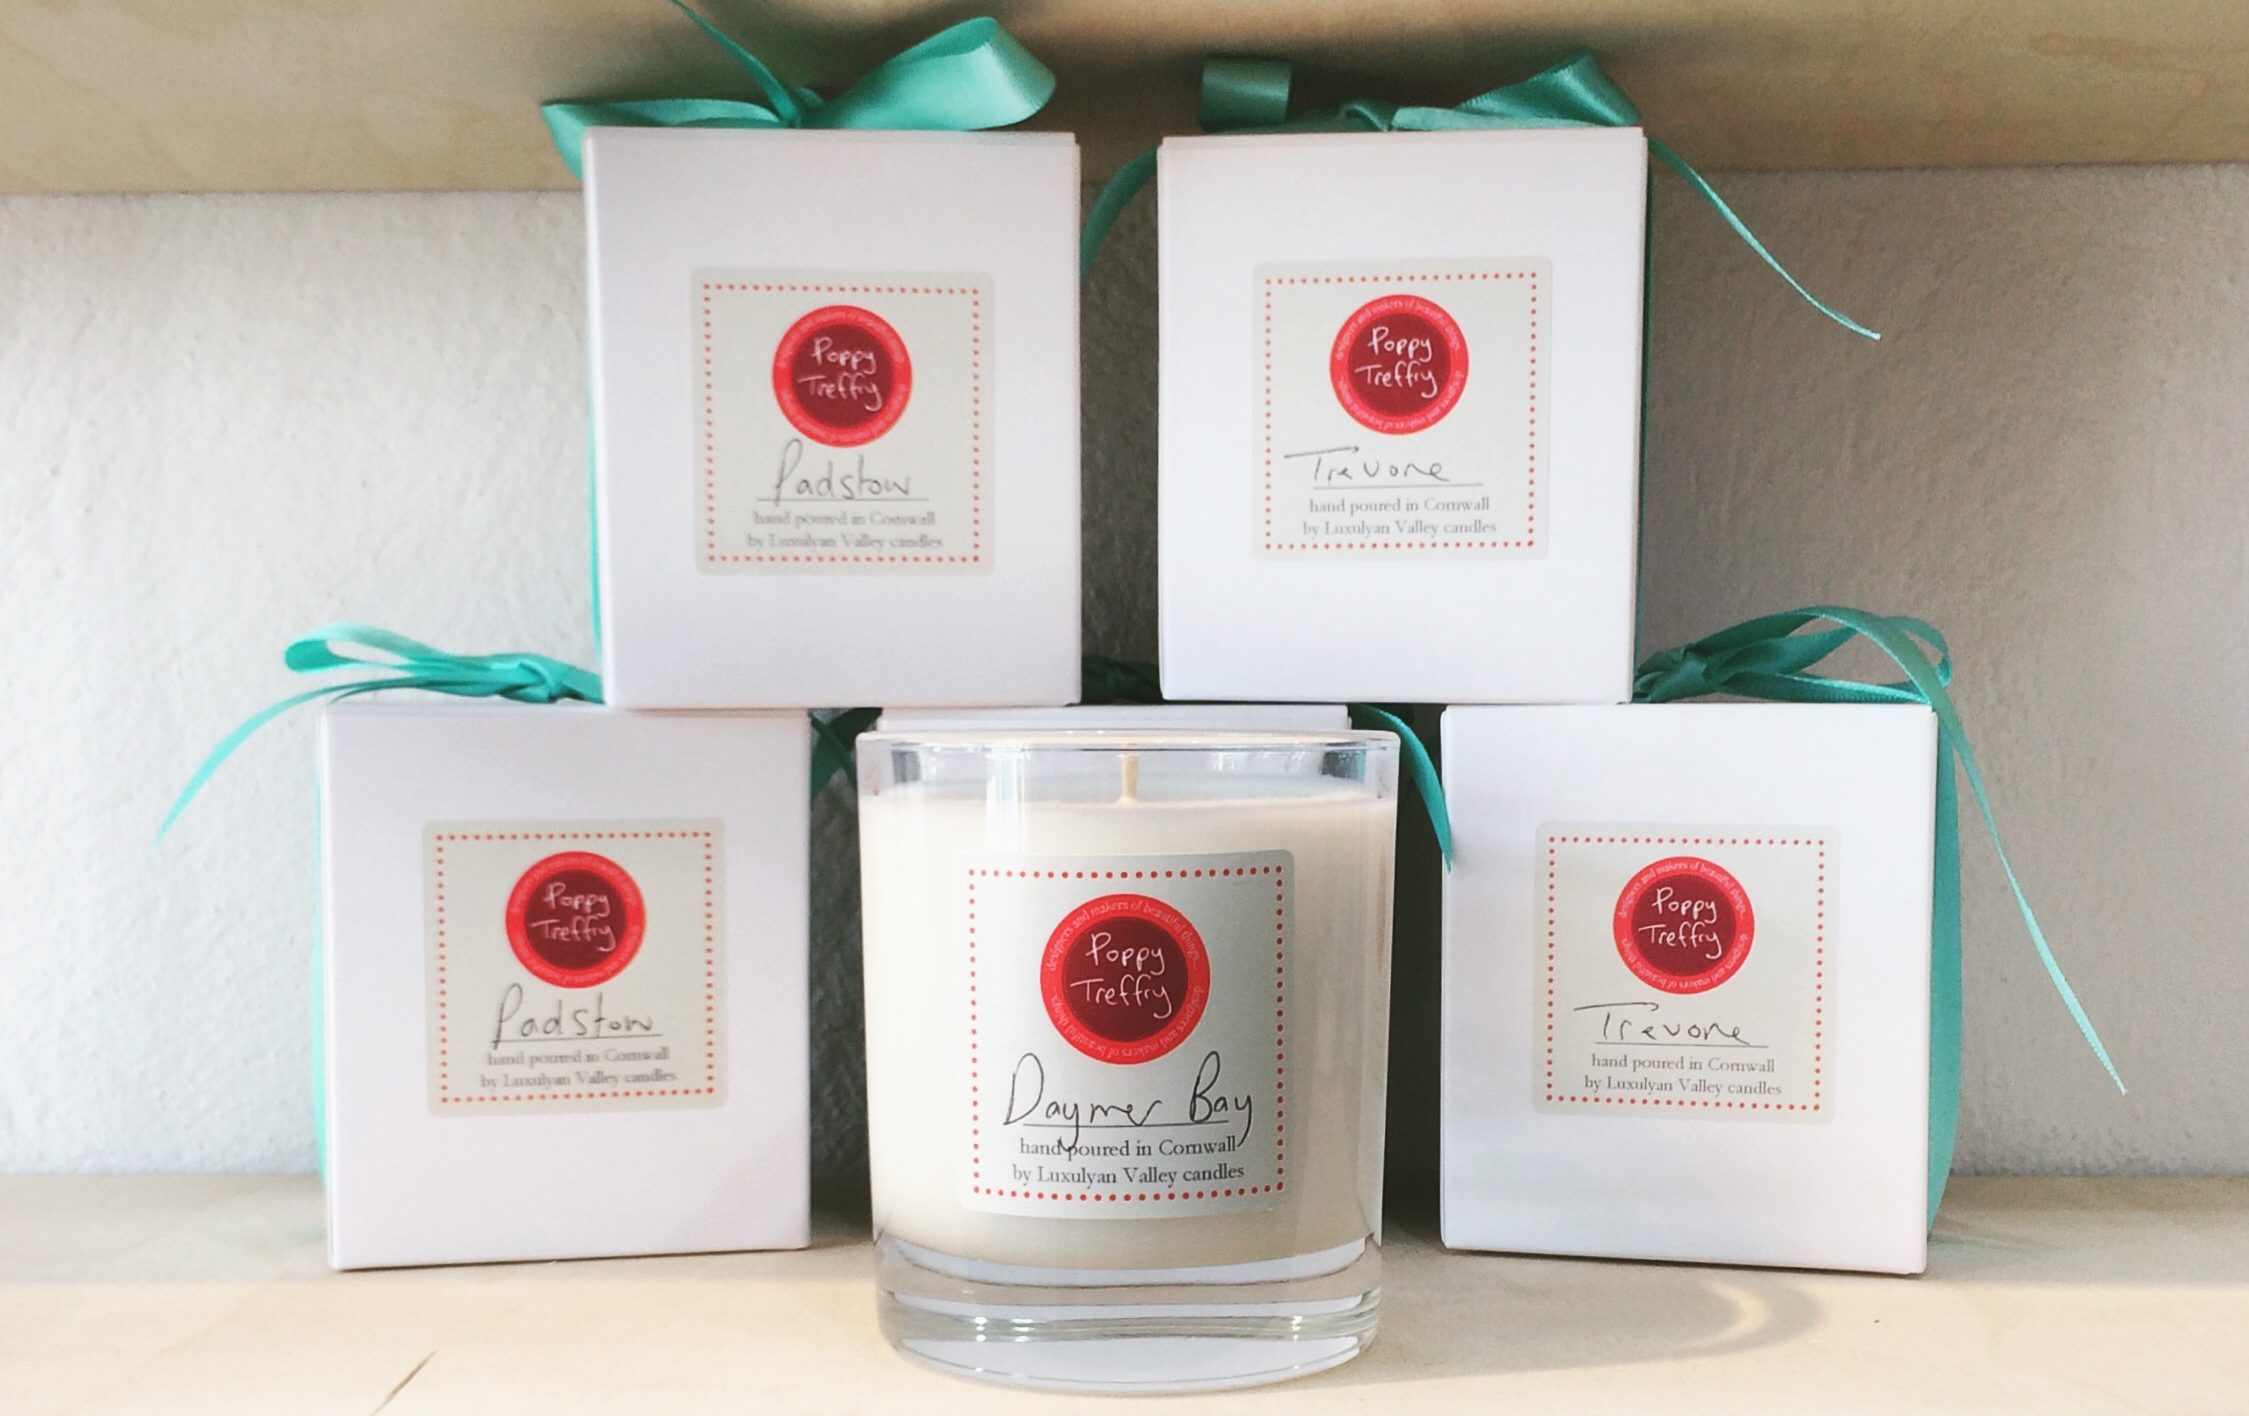 Wholesale own brand scented candles UK | Bespoke candles |